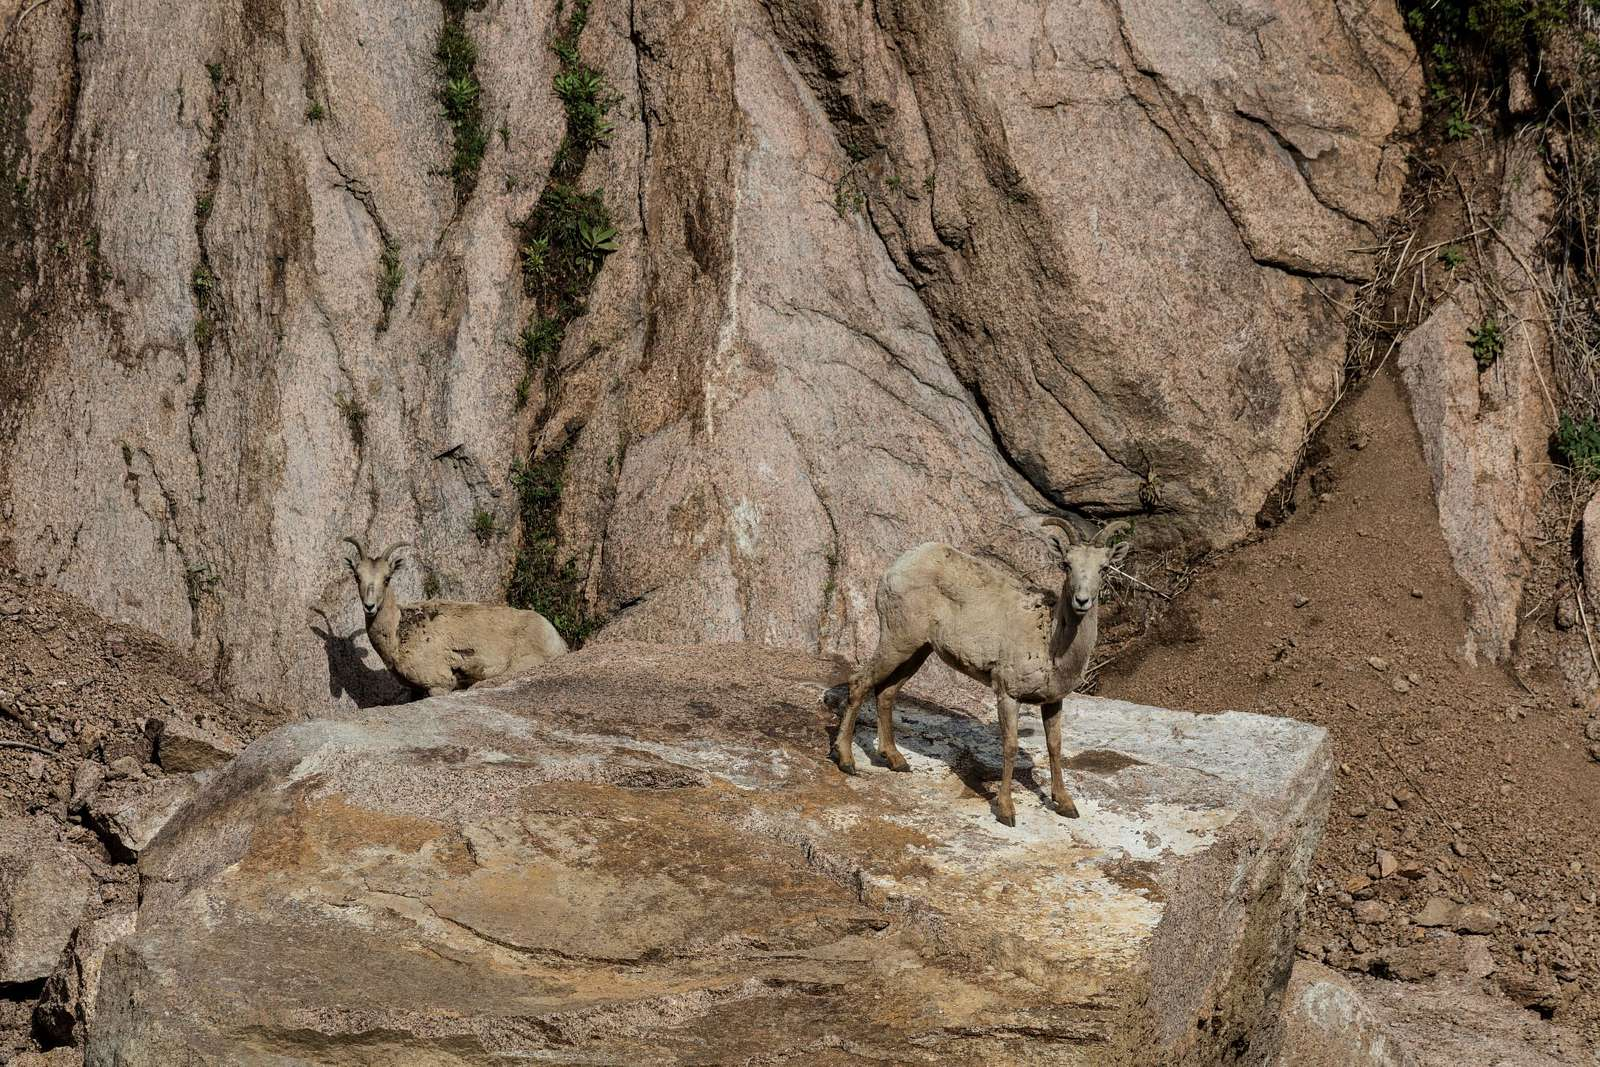 Rocky Mountain bighorn sheep ewes stare warily from the rocks near Cheesman Dam, one of the dams that slows and captures water from the South Platte River for use as part of Denver's drinking-water supply. Cheesman Dam, which was named for Walter Scott Cheesman, a Denver druggist, railroad builder, and designer of water infrastructure, was the world's tallest at 221 feet when it was completed in 1905